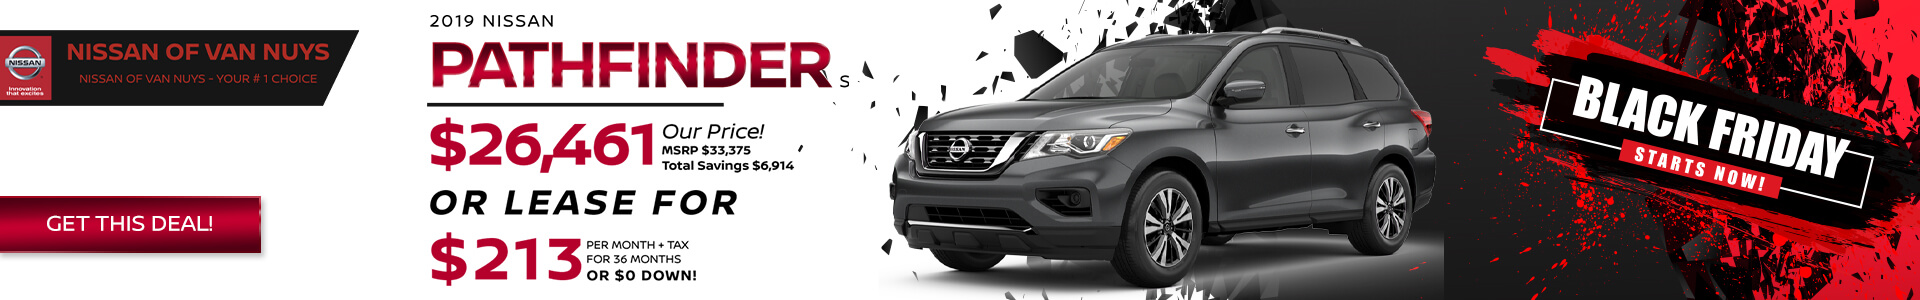 Nissan Pathfinder - Lease for $289